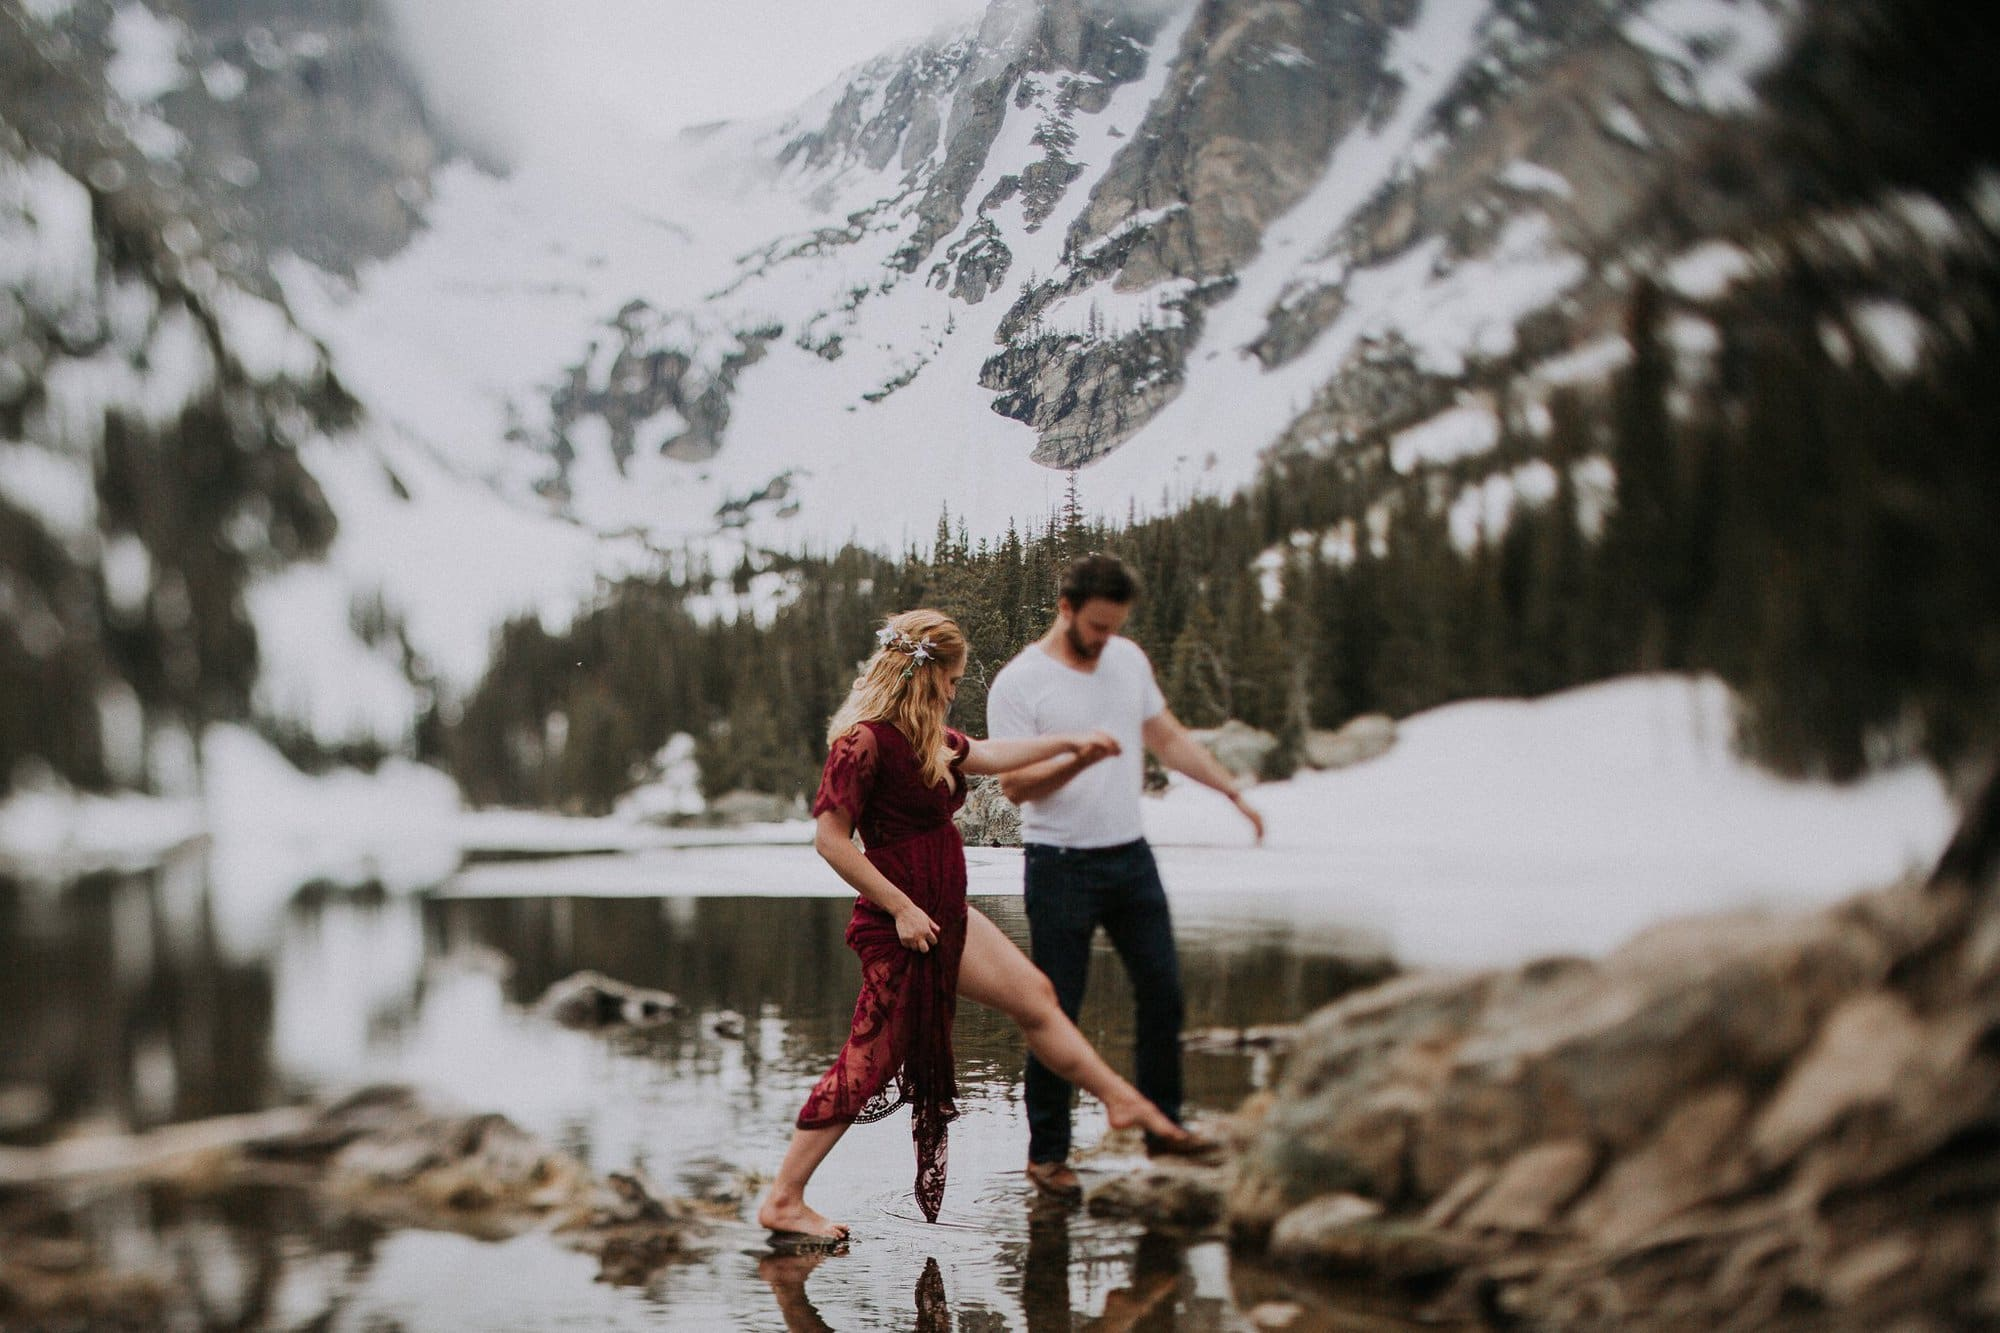 Dream Lake Anniversary Photos, Colorado Mountain Intimate Weddings and Adventurous Elopement Photographer, Justyna E Butler, Colorado Wedding Photographer